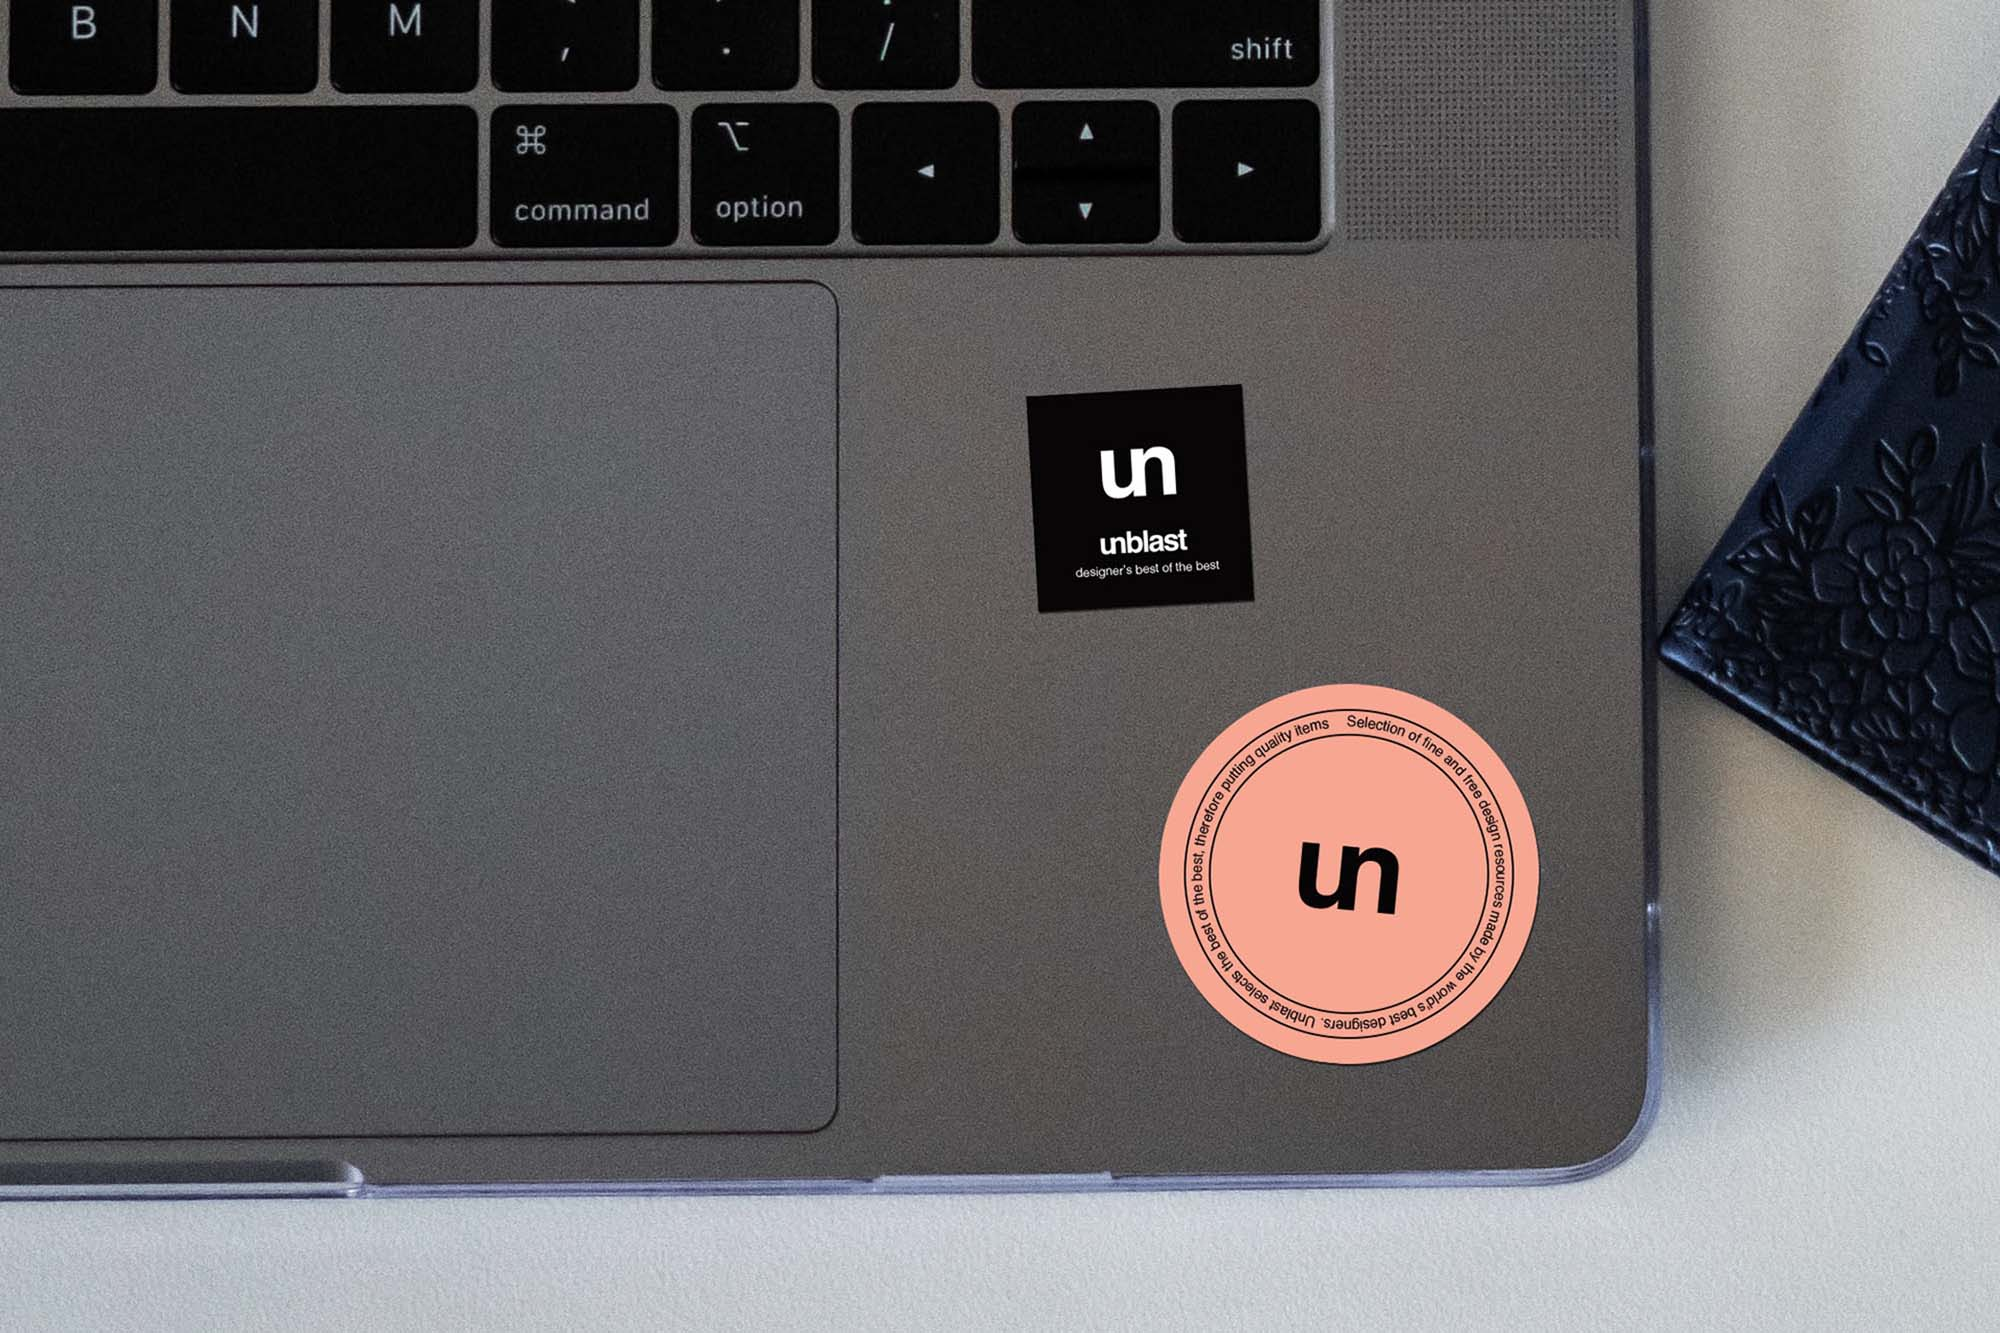 Free Sticker On Laptop Mockup  Psd